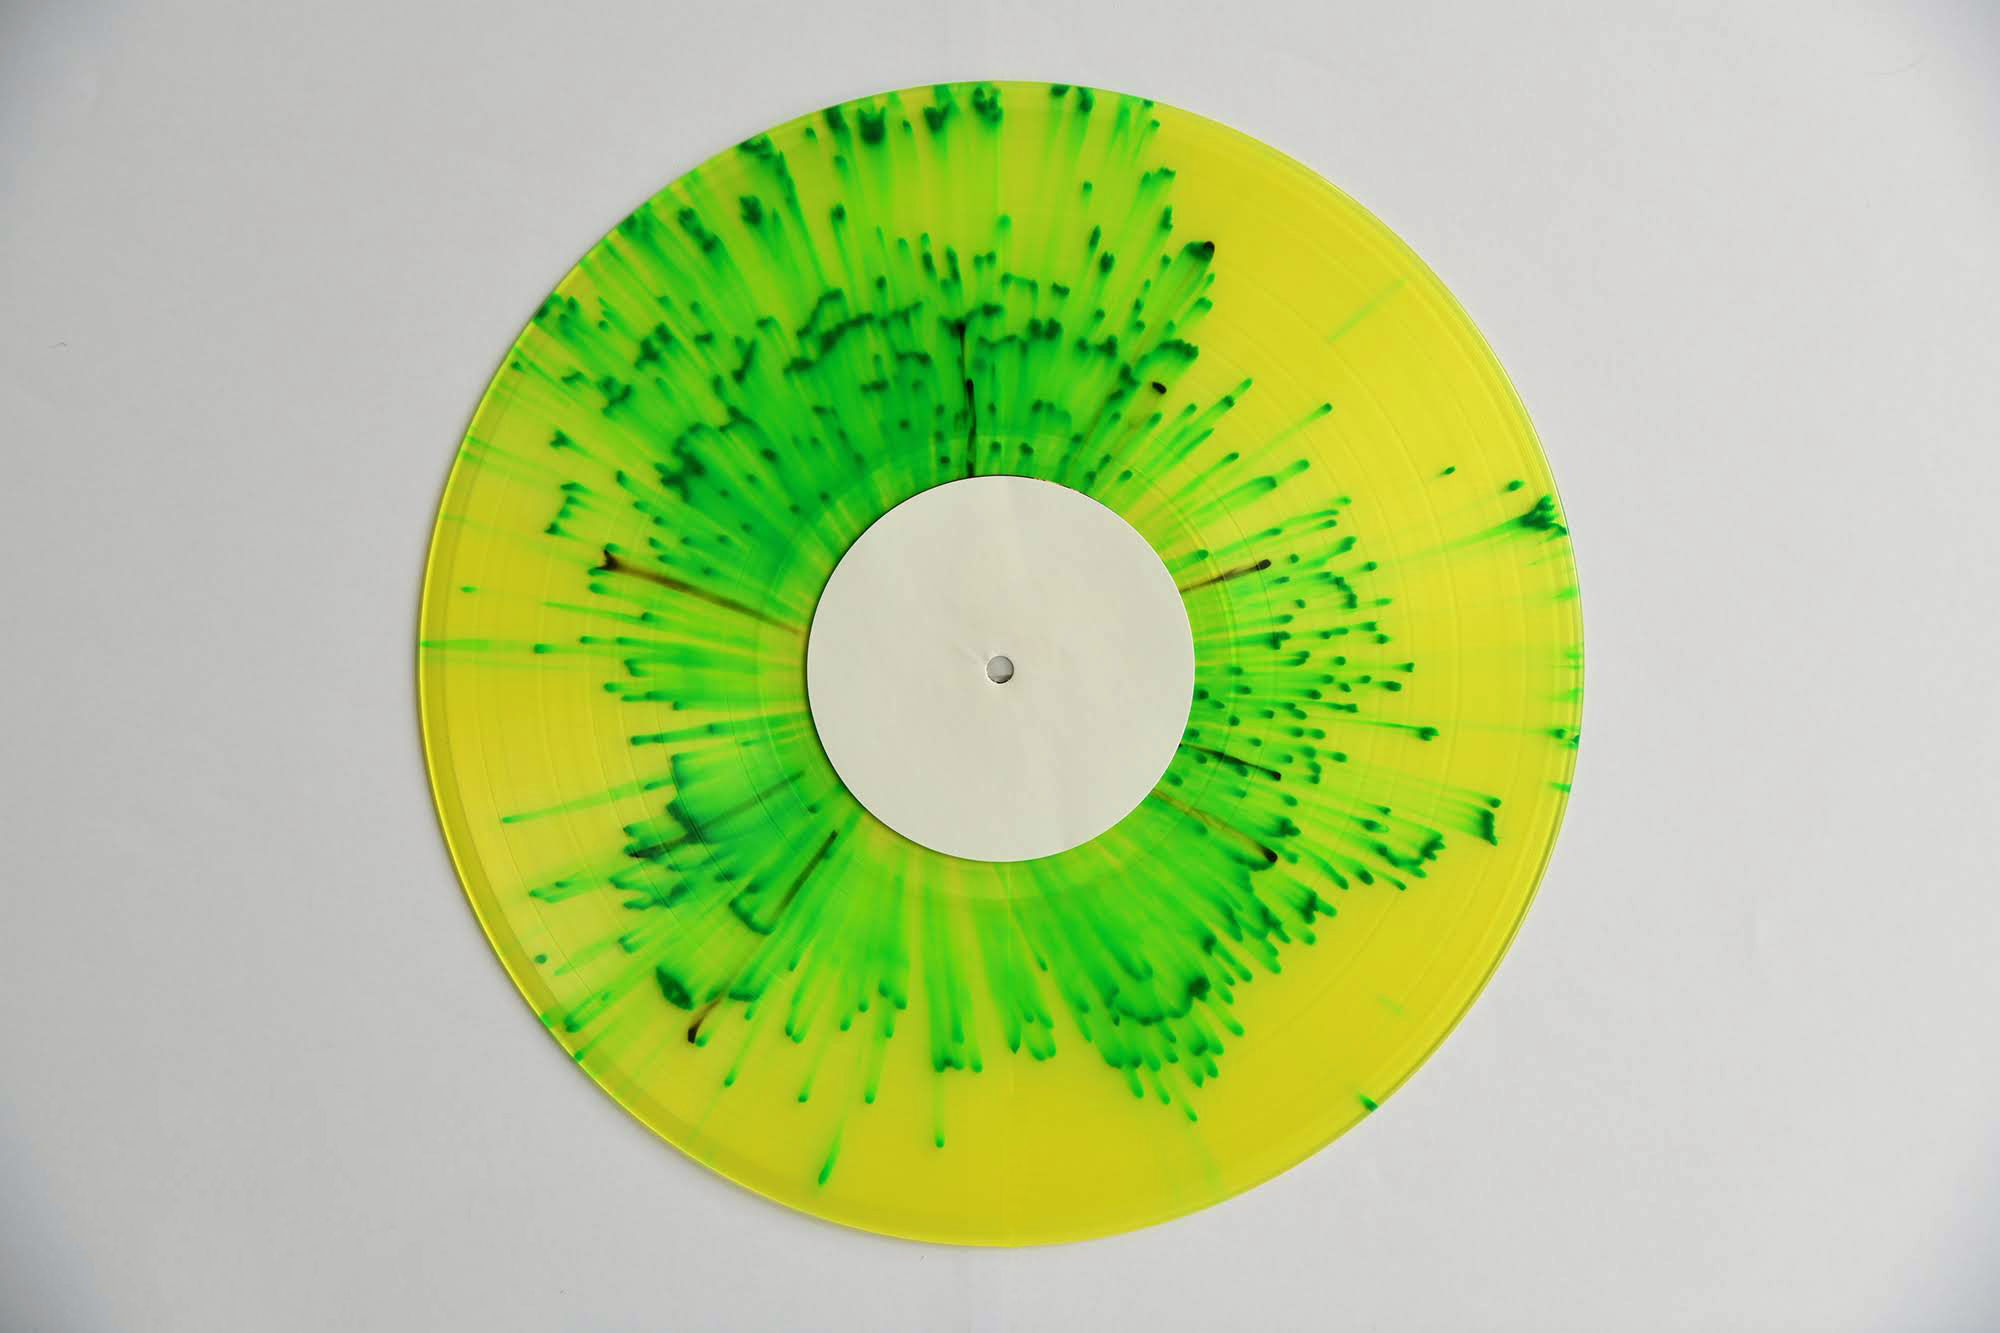 Splatter 15 - Translucent